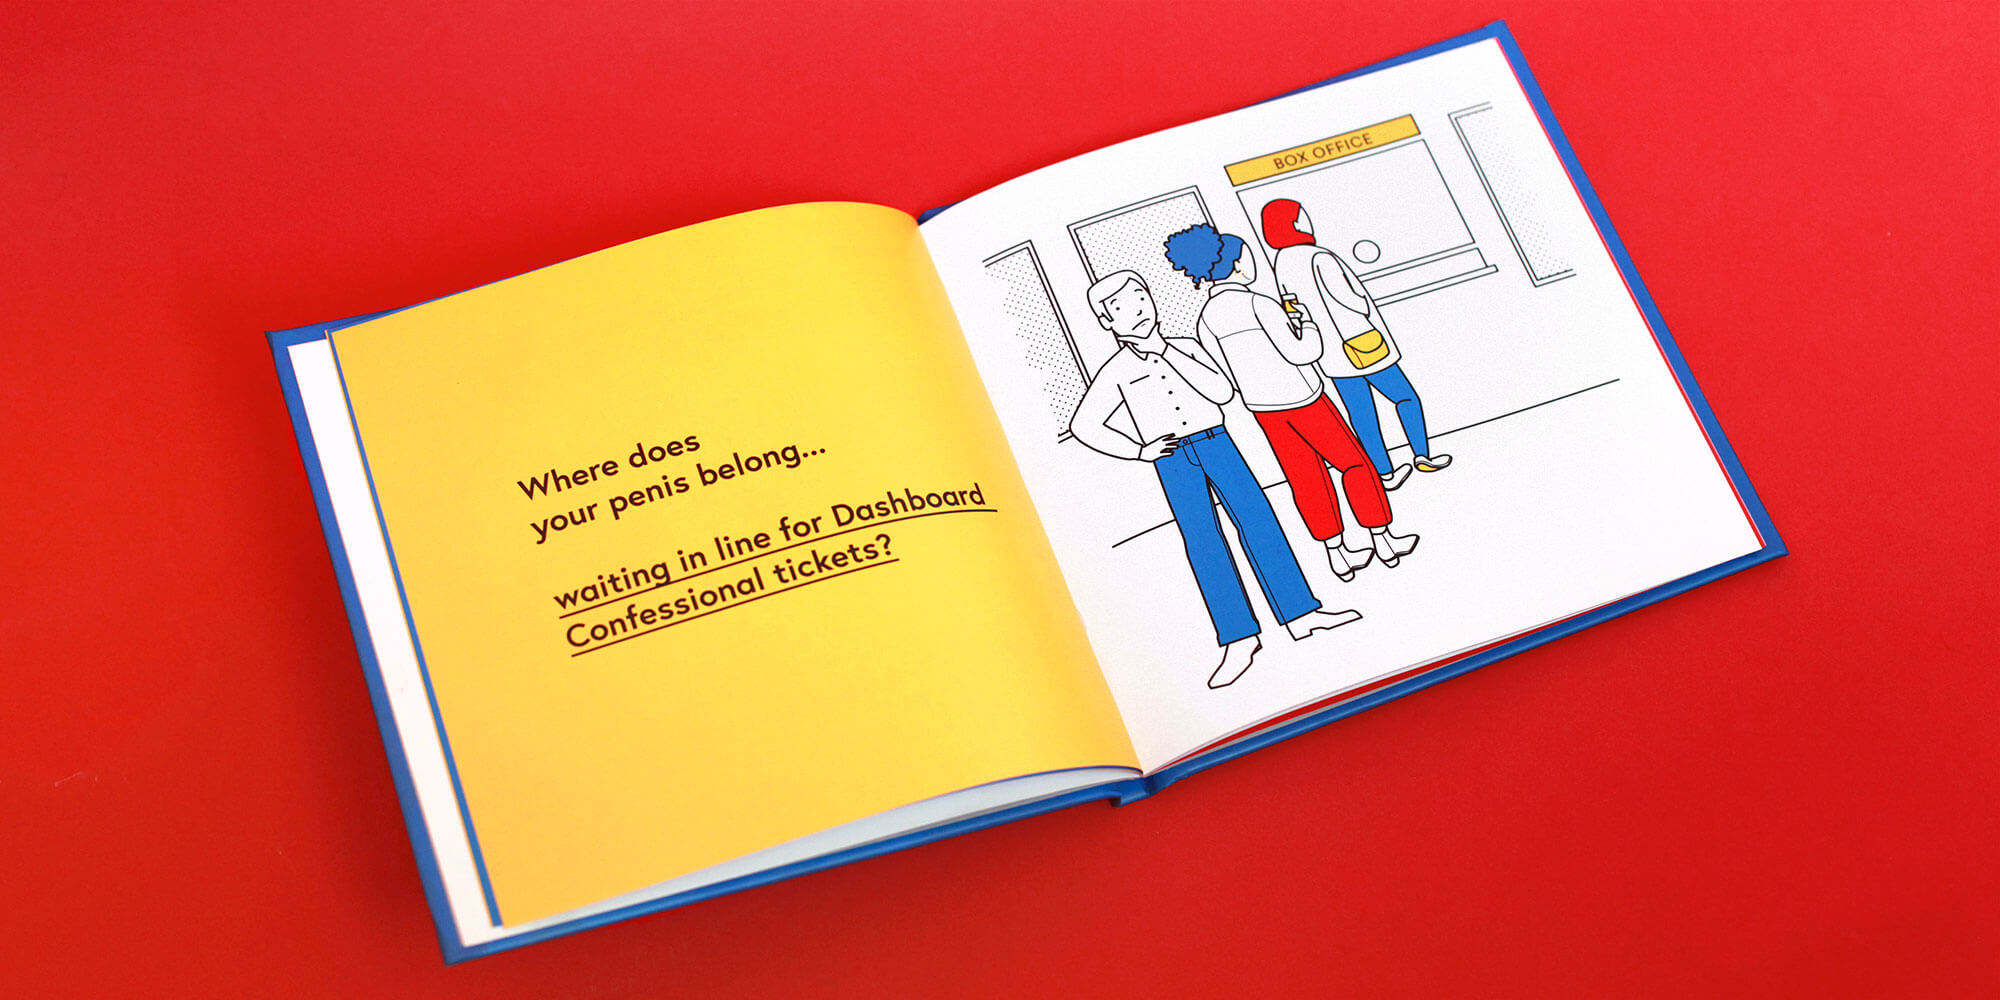 A photograph of the book 'Where Does Your Penis Belog?' open to the page where the character is deciding where his penis belongs while in line for concert tickets